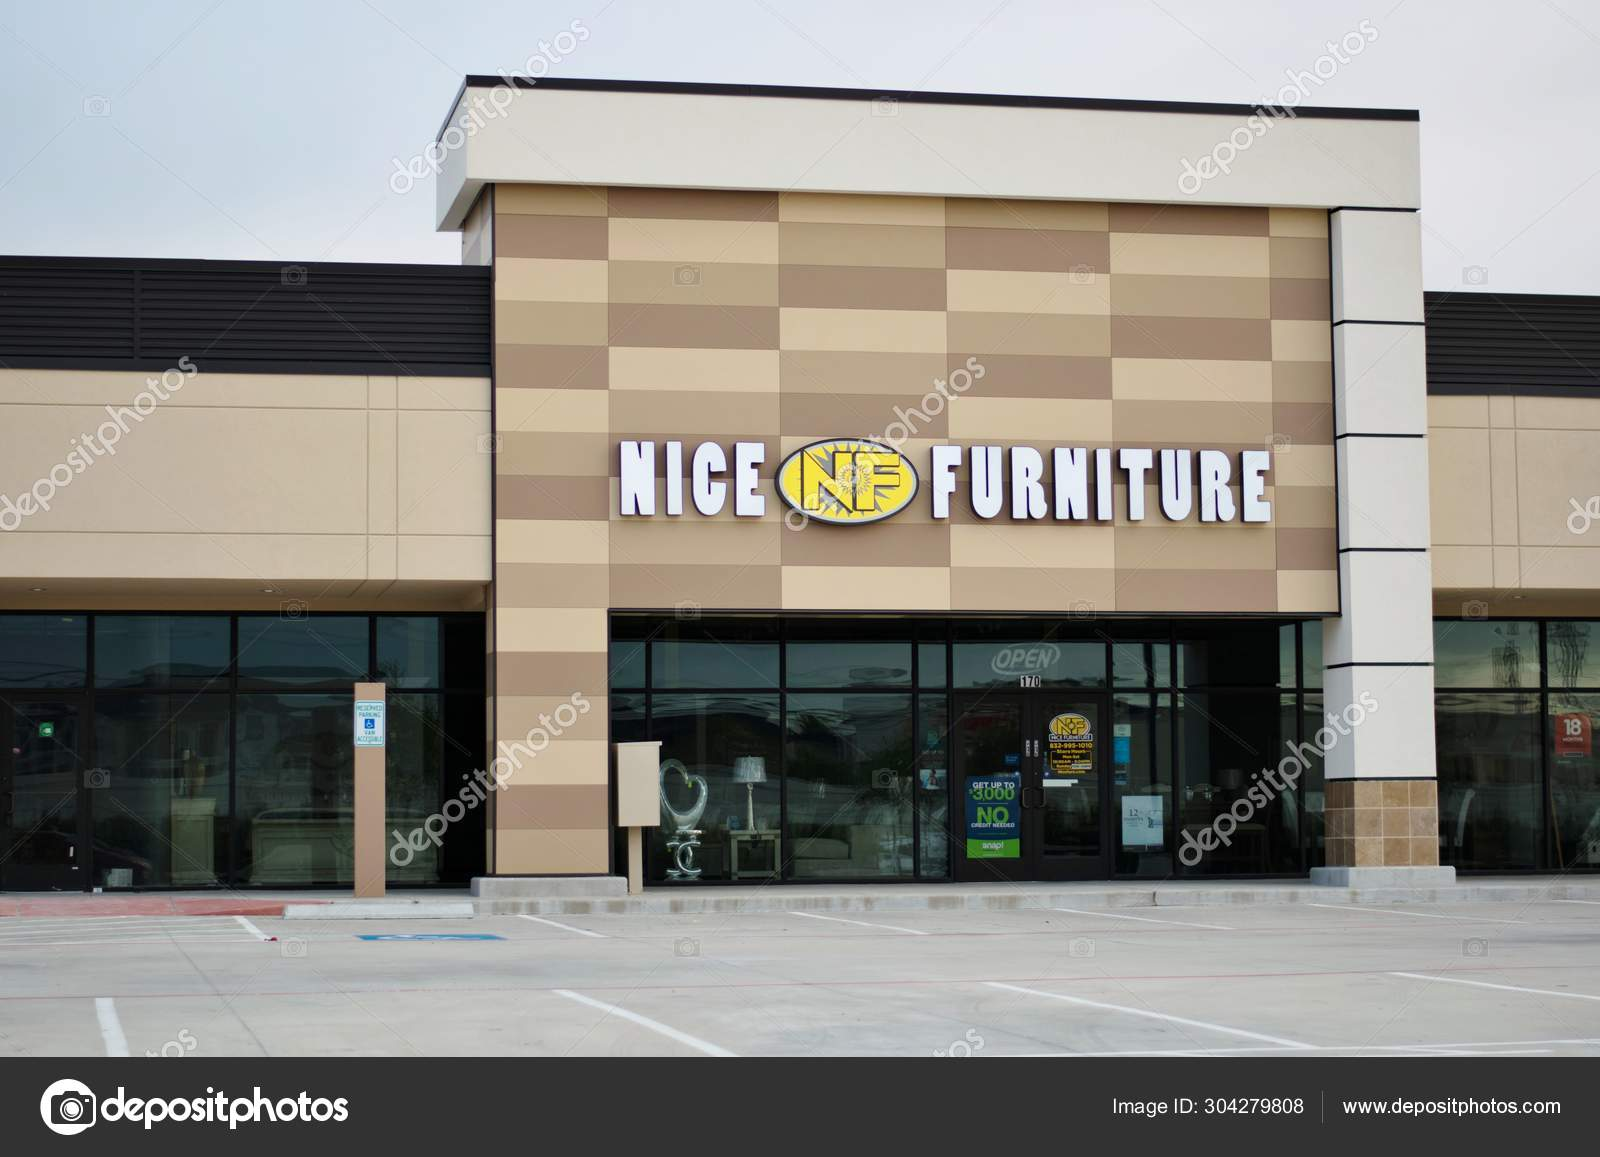 Houston Texas Usa 2019 Nice Furniture Store Front Humble Texas Stock Editorial Photo Stroppy1 304279808